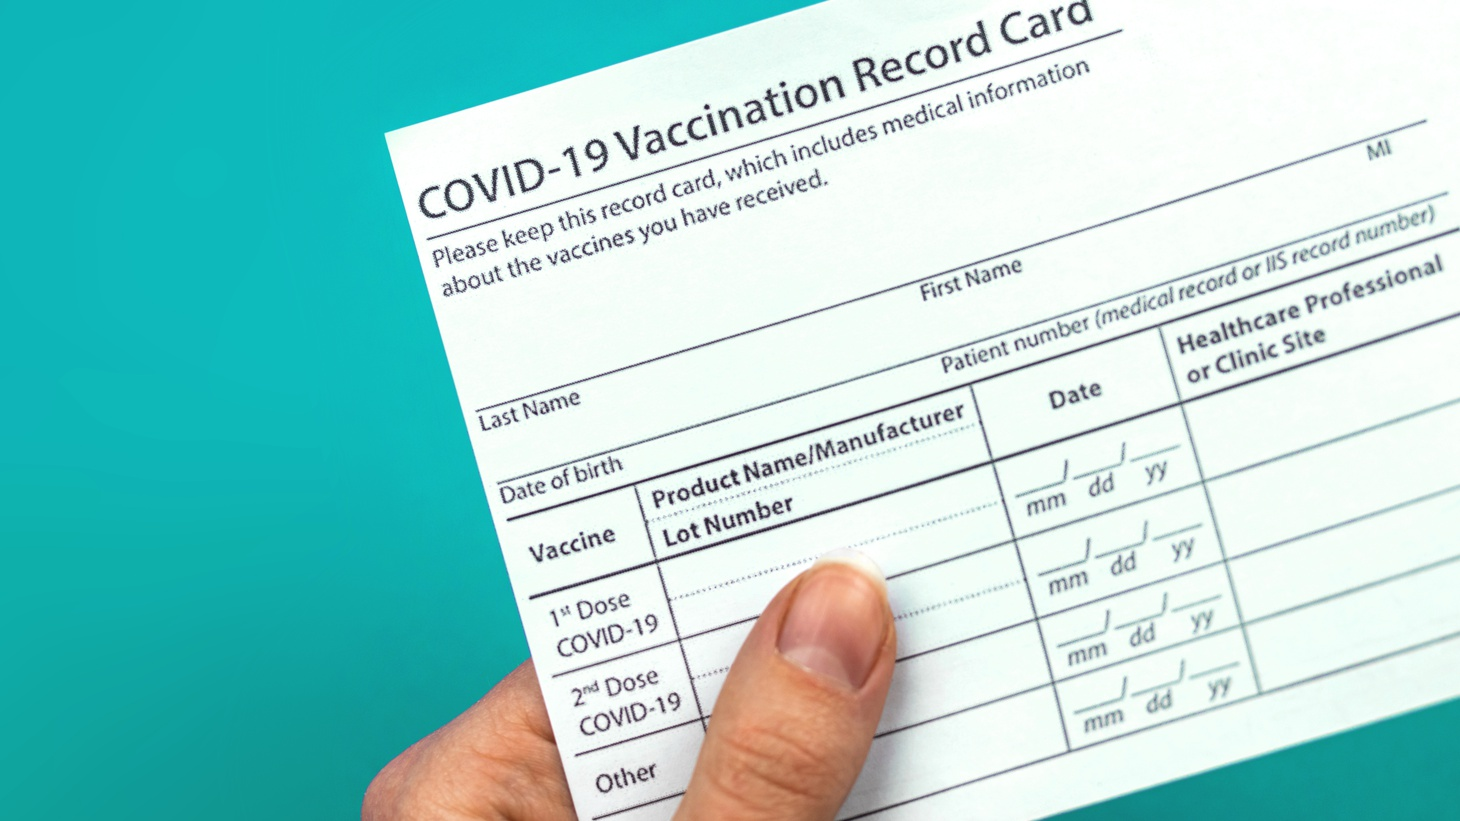 Your COVID-19 vaccine card could soon become as important as your driver's license or passport. Just like IDs, the illegal market of vaccine cards is here.